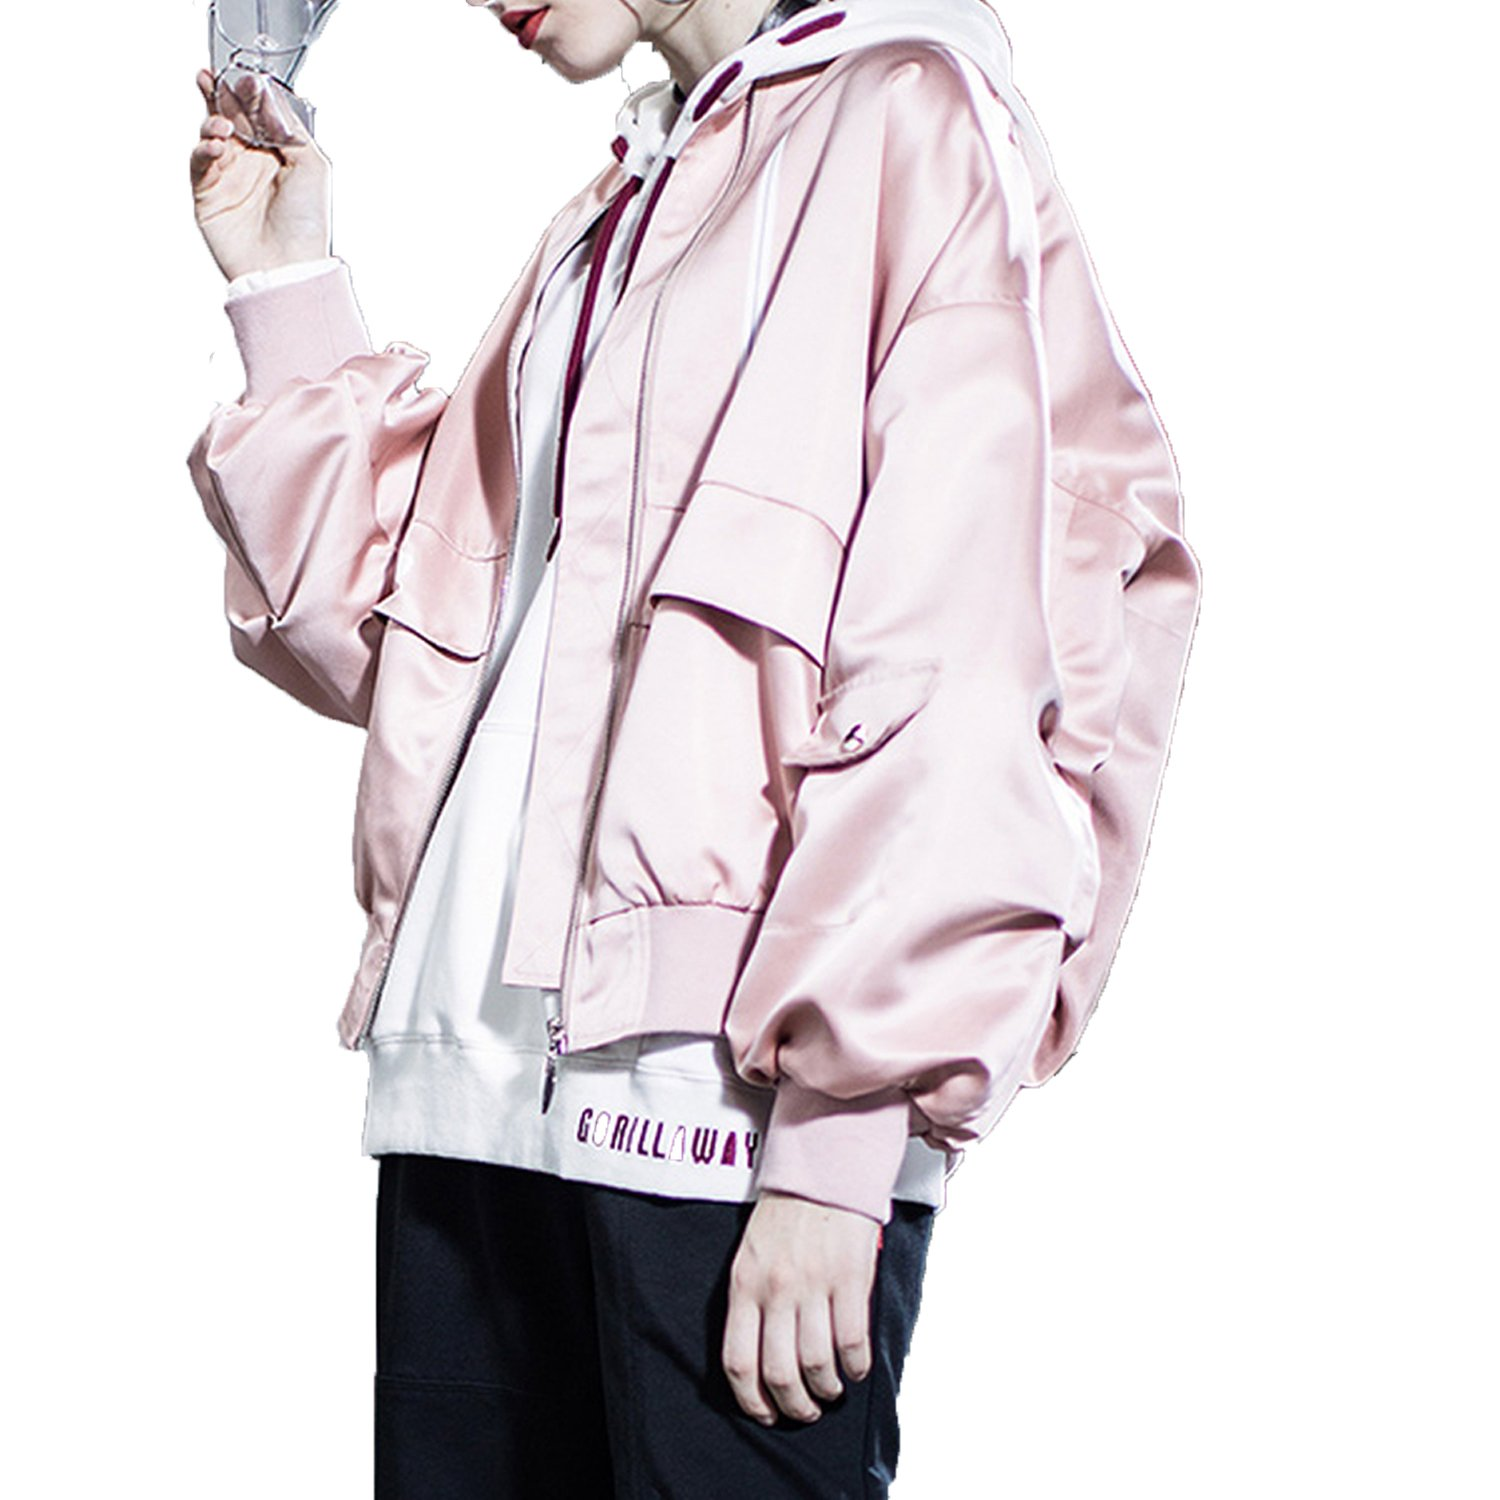 2018 Spring Pink Baseball Uniform Wind Baseball Satin Short Coat Jacket Ins Super Fire,L (Pre-Sale About 3 Days),Pink Thick